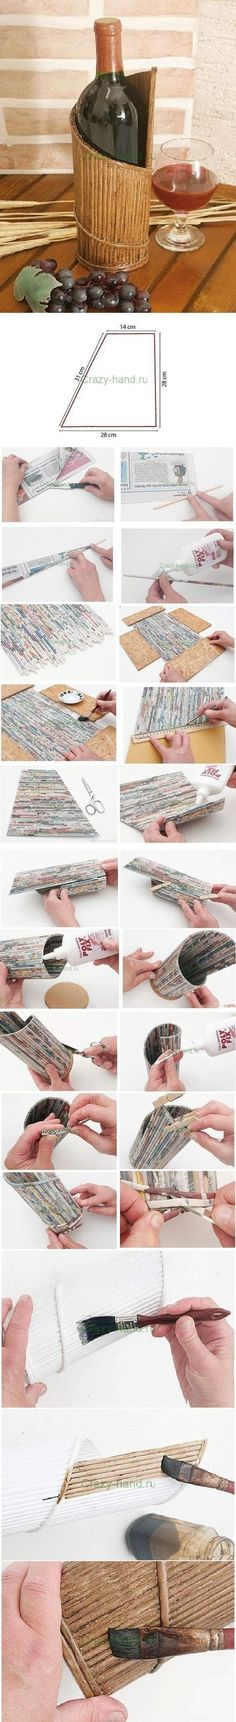 Newspaper bottle holder.....gorgeous!